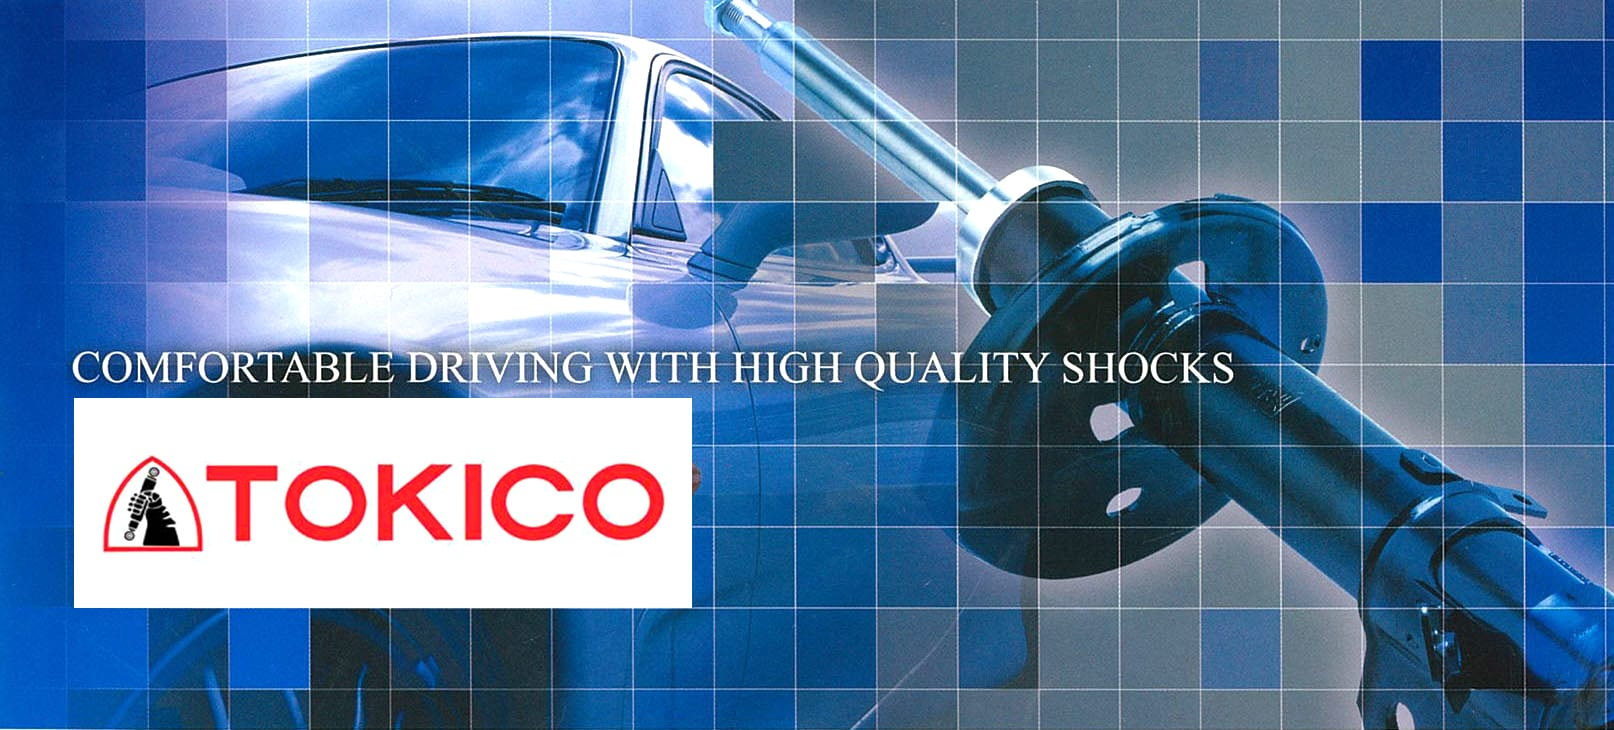 TOKICO Shock Absorbers JDM car parts. Auto Parts. Japanese car parts. Toyota Parts